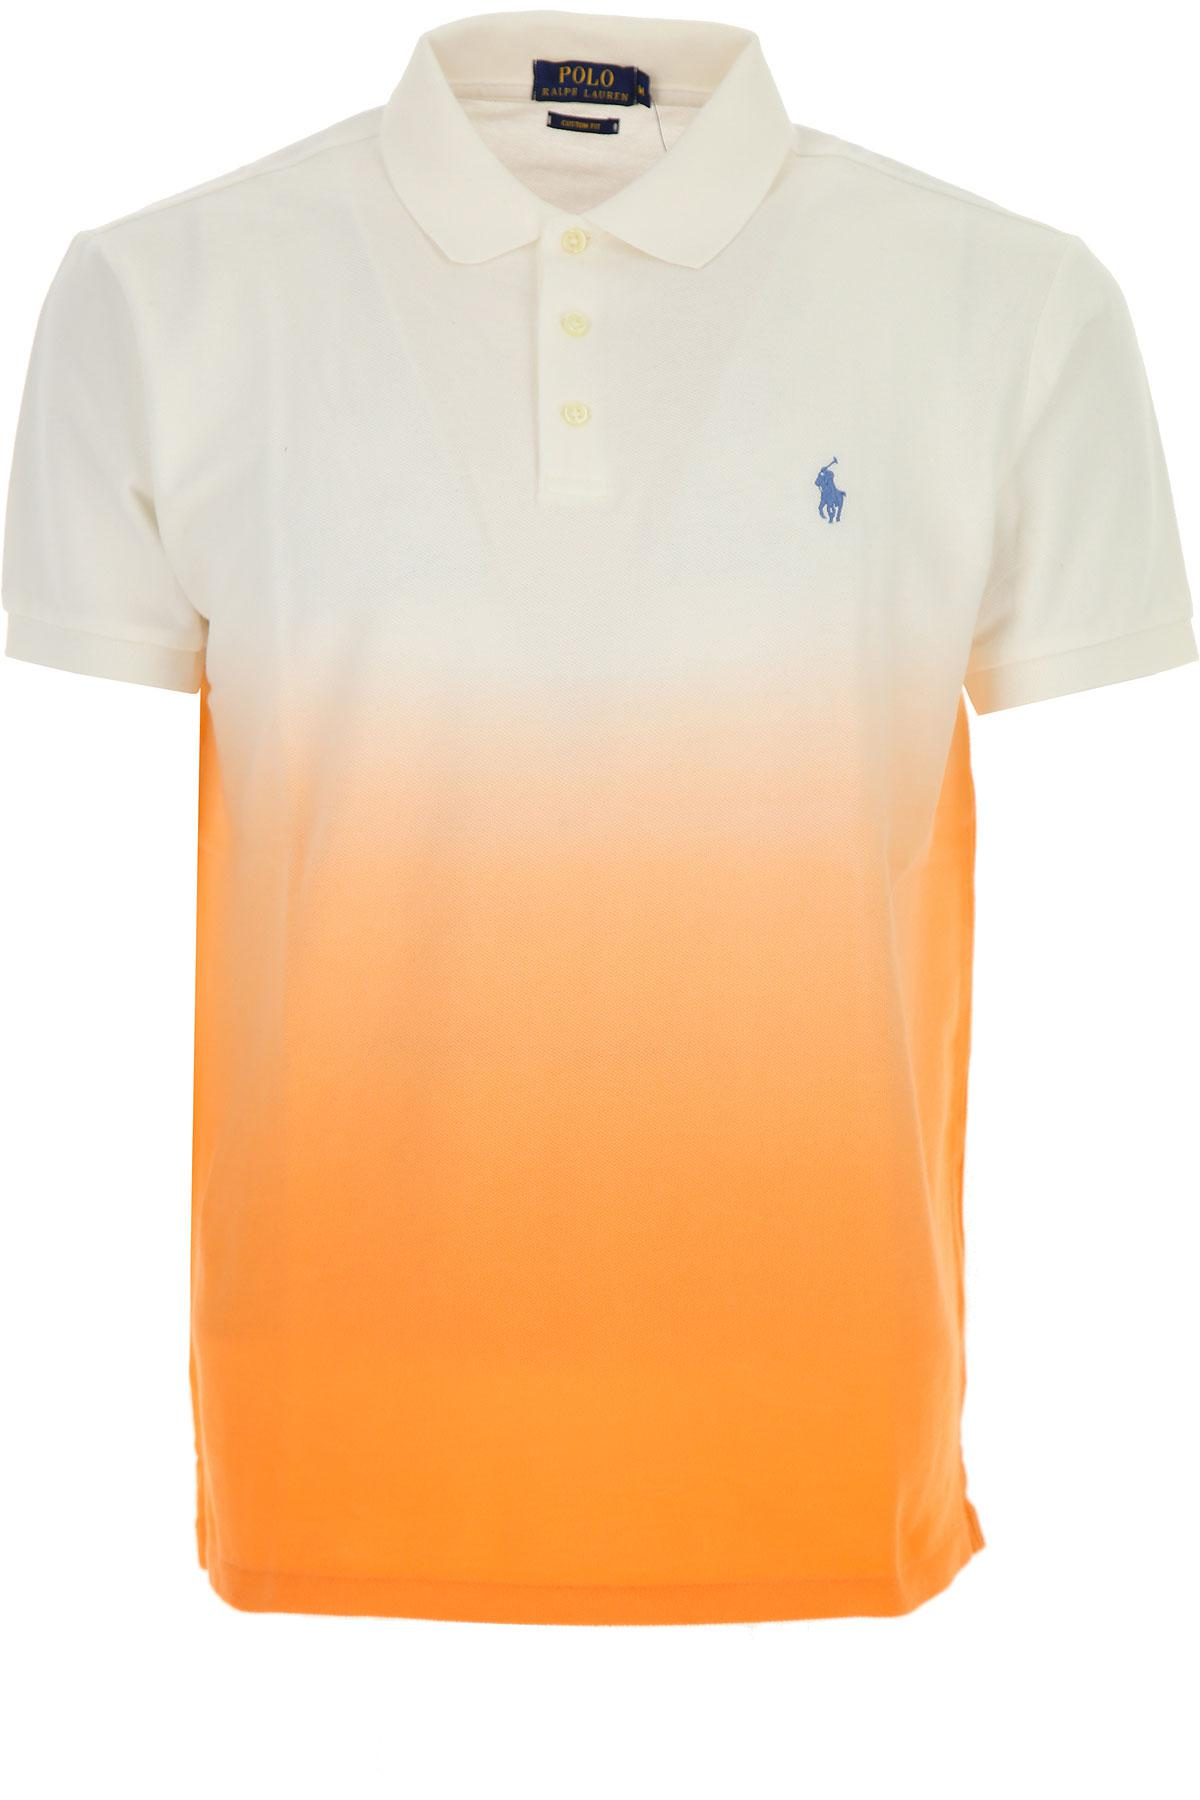 Lyst Ralph Lauren Polo Shirt For Men On Sale In Outlet In White